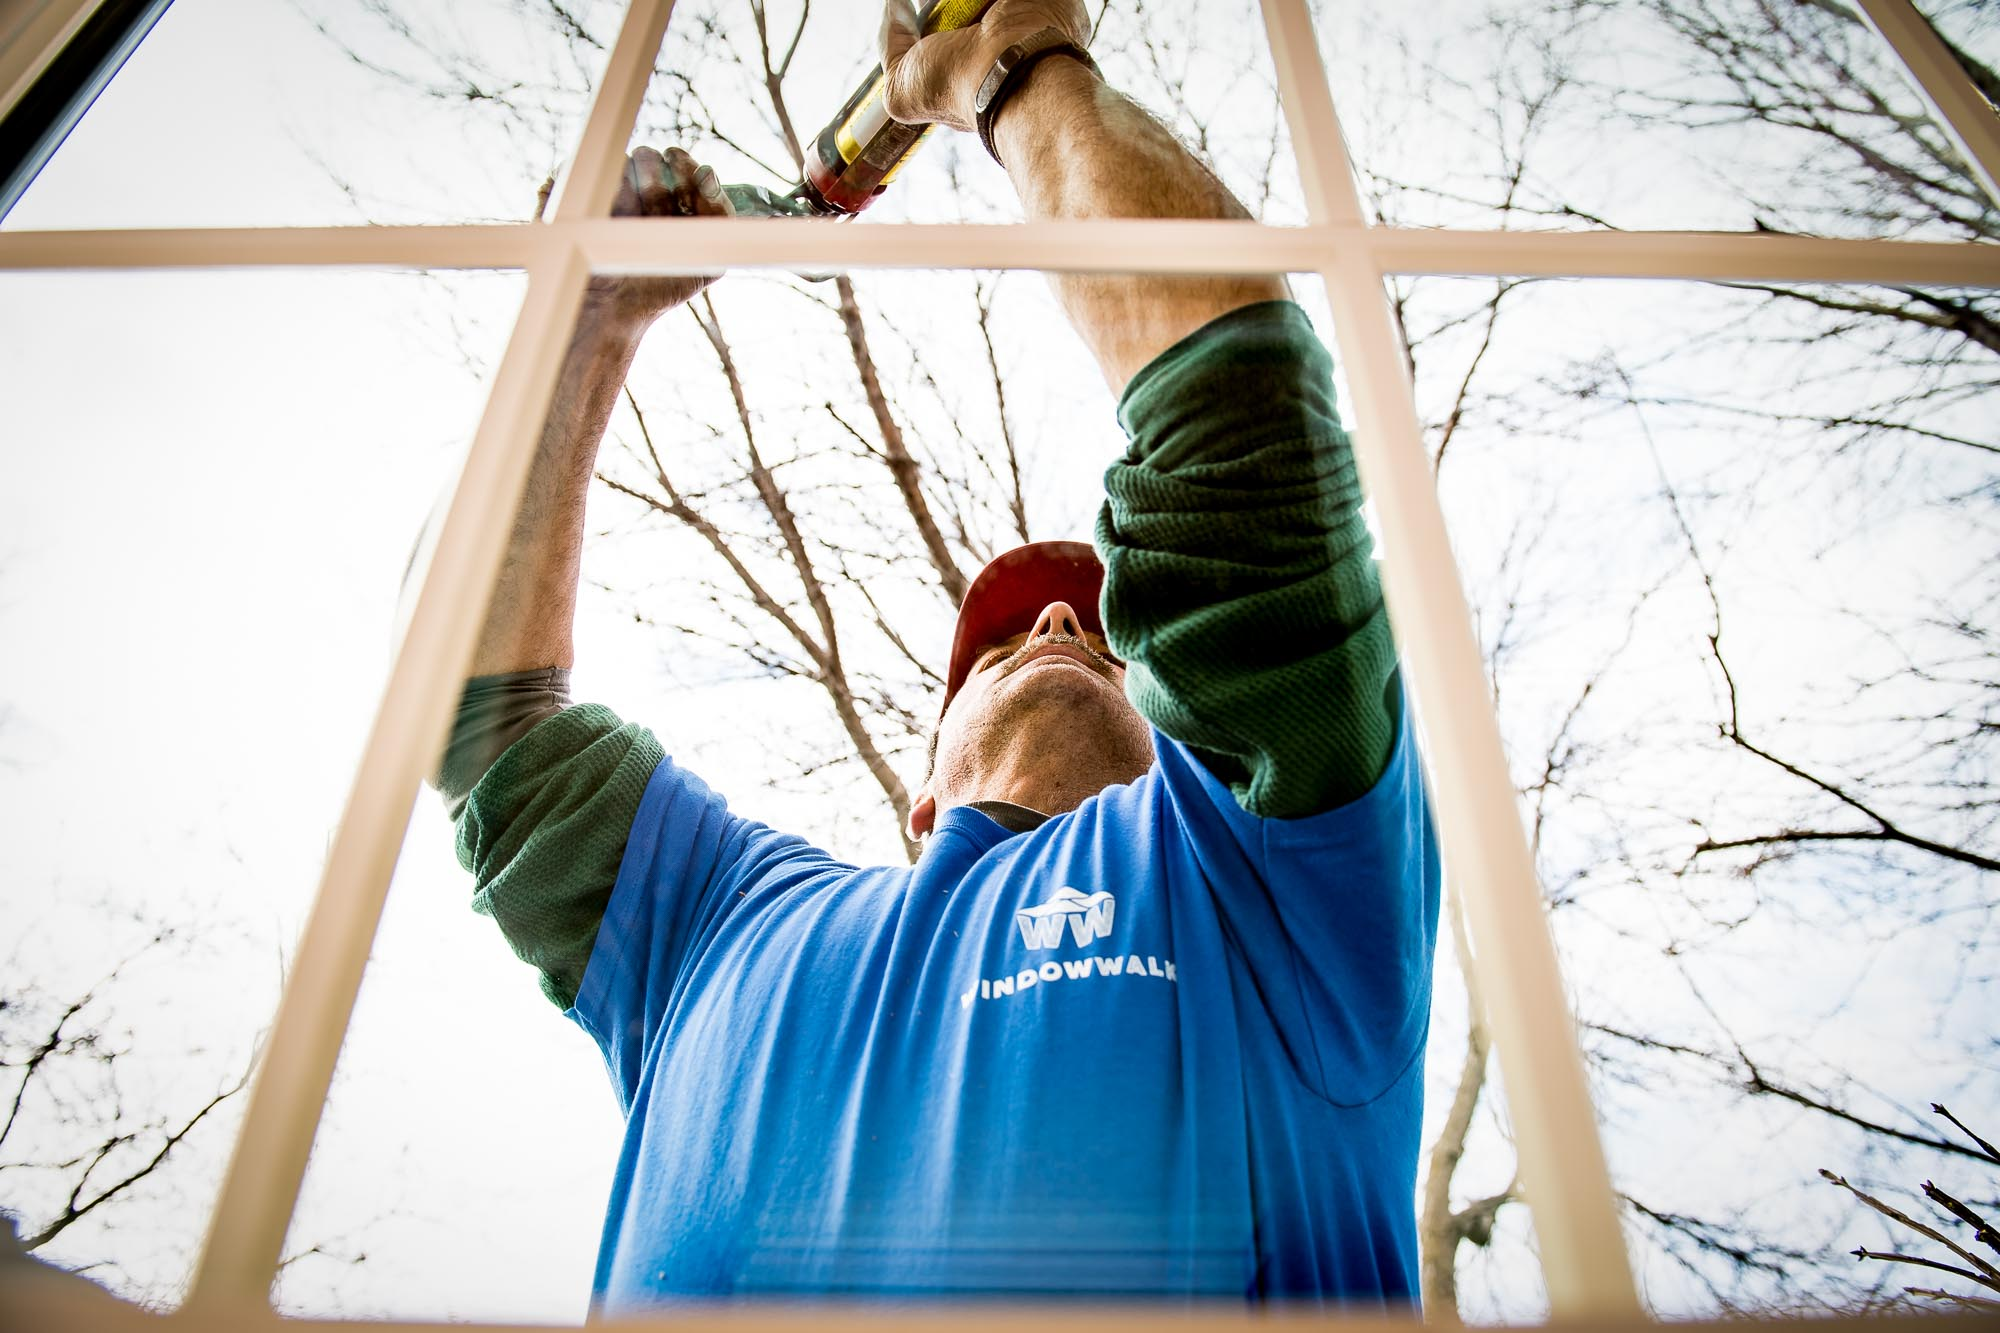 Commercial photograph of a professional window installer from a creative angle